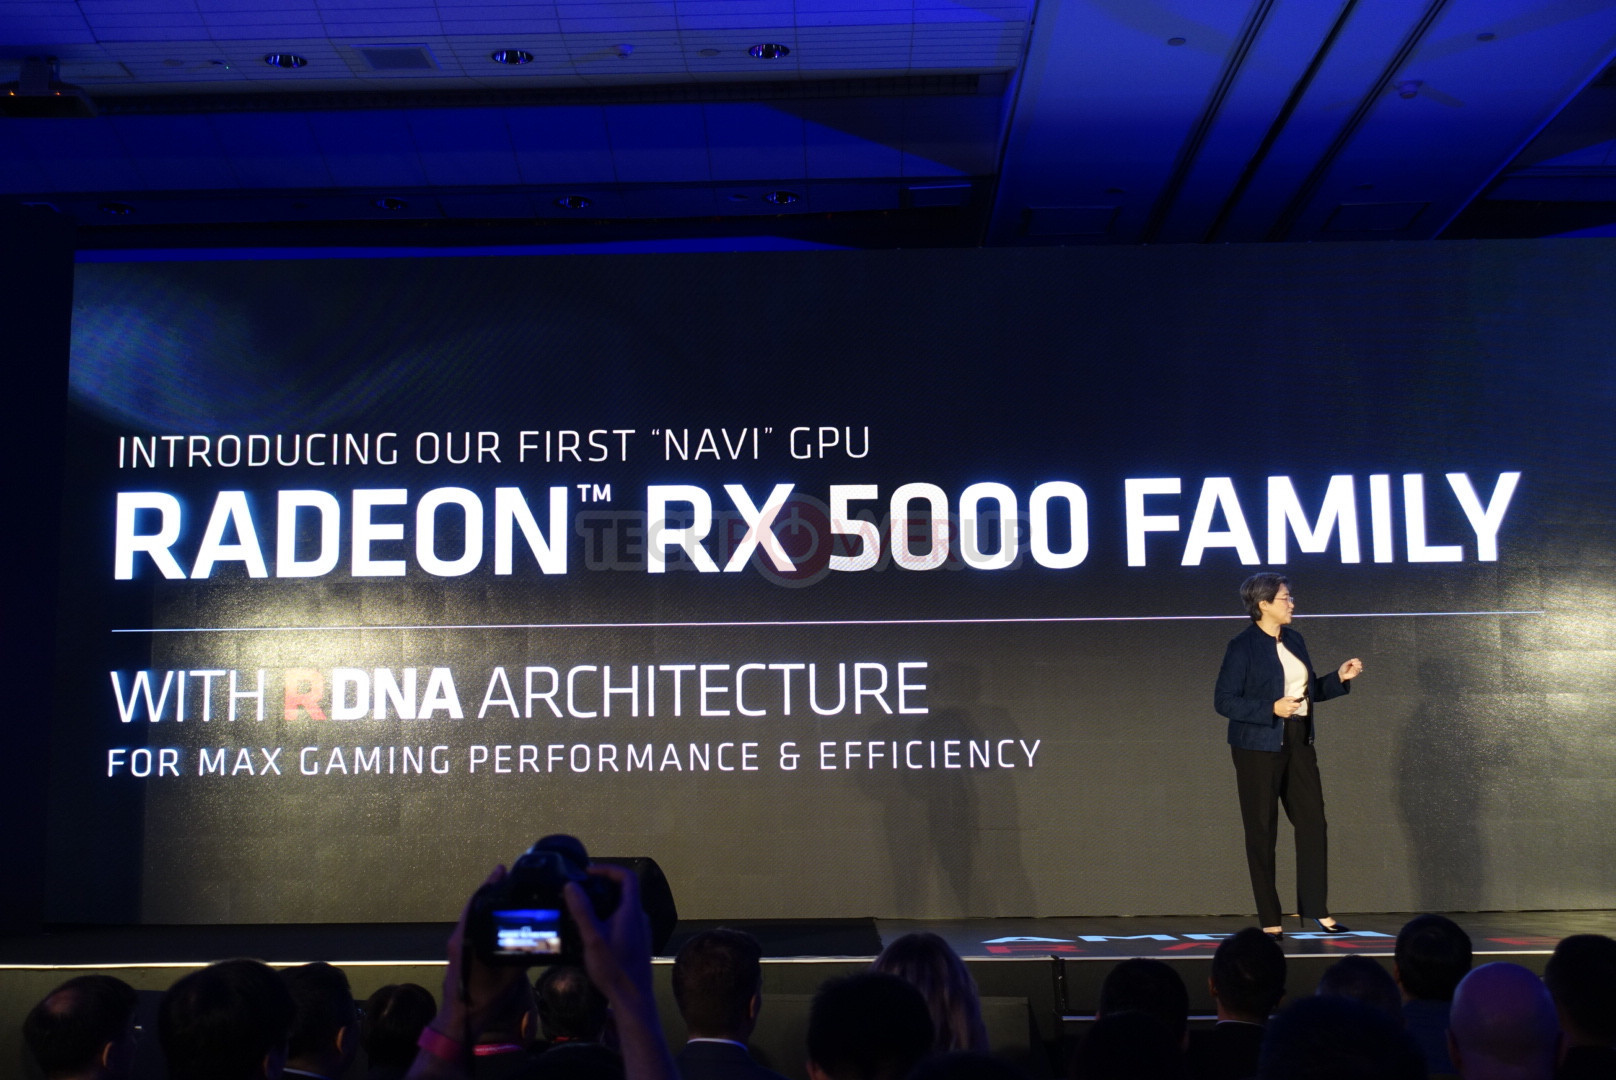 AMD Announces Radeon RX 5700 Based on Navi: RDNA, 7nm, PCIe